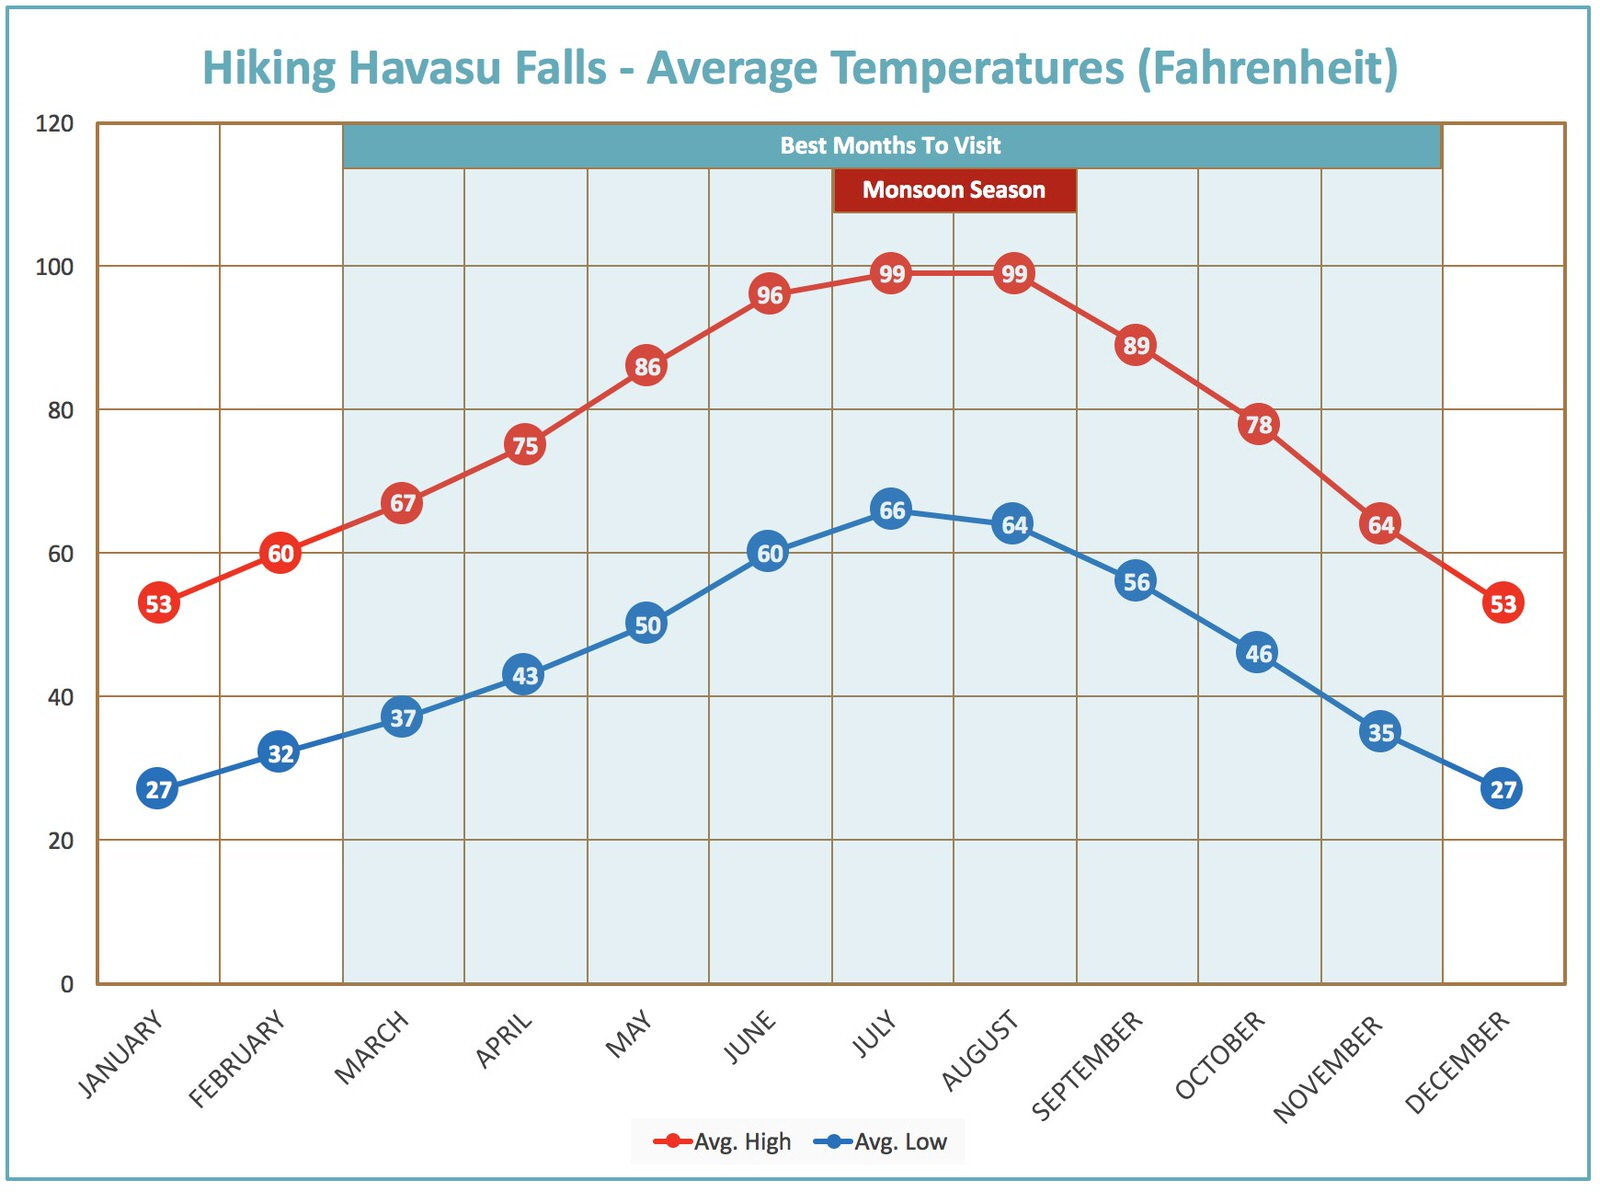 This chart shows the best times to visit Havasu falls based on temperatures and Monsoon Seasons.